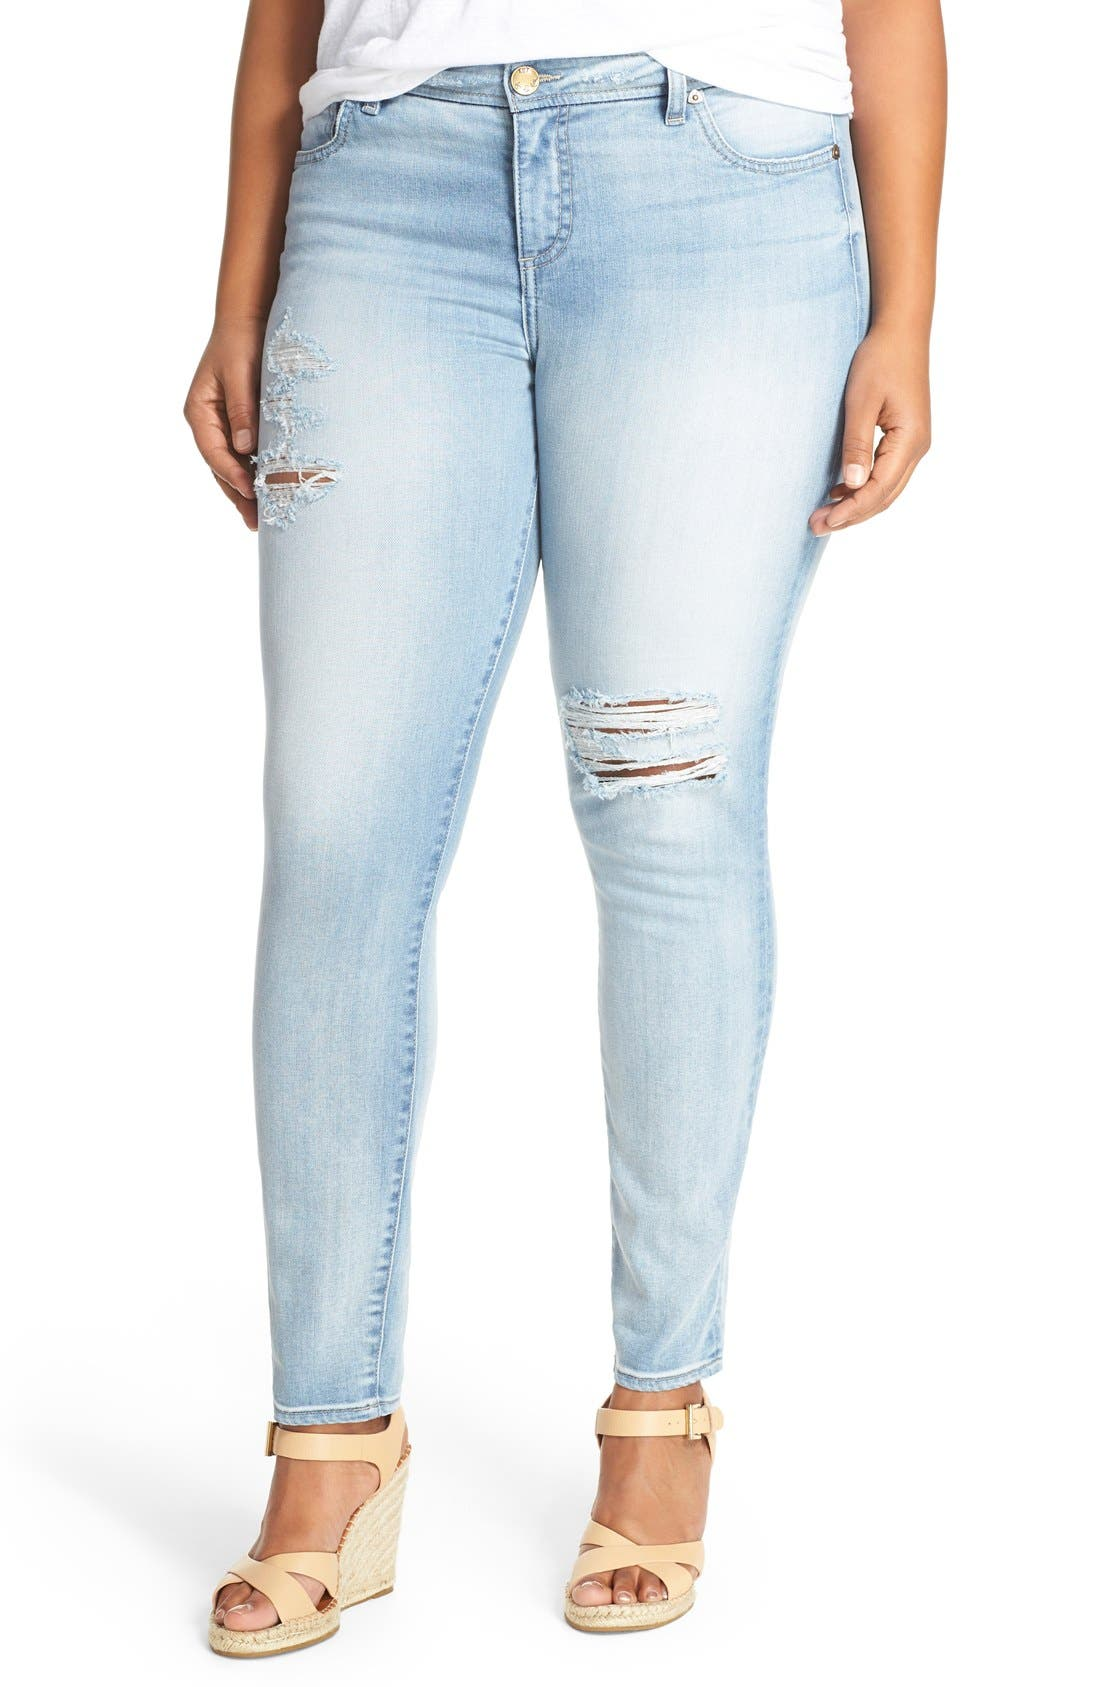 'Adele' Ripped Stretch Slouchy Boyfriend Jeans,                             Main thumbnail 1, color,                             UPGRADE